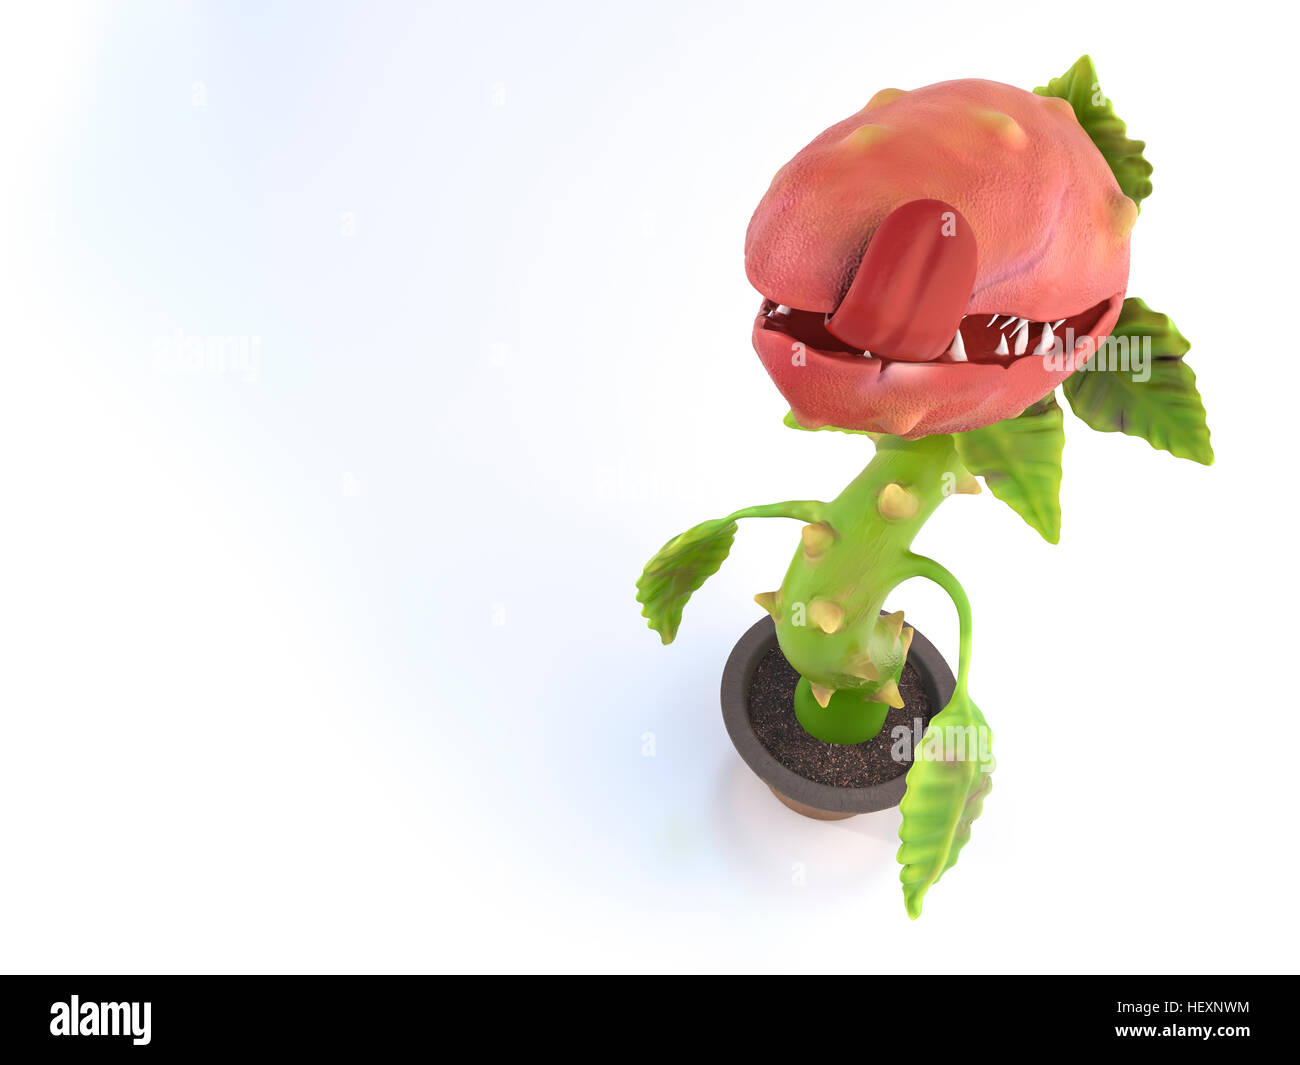 Hungry carnivorous plant - Stock Image